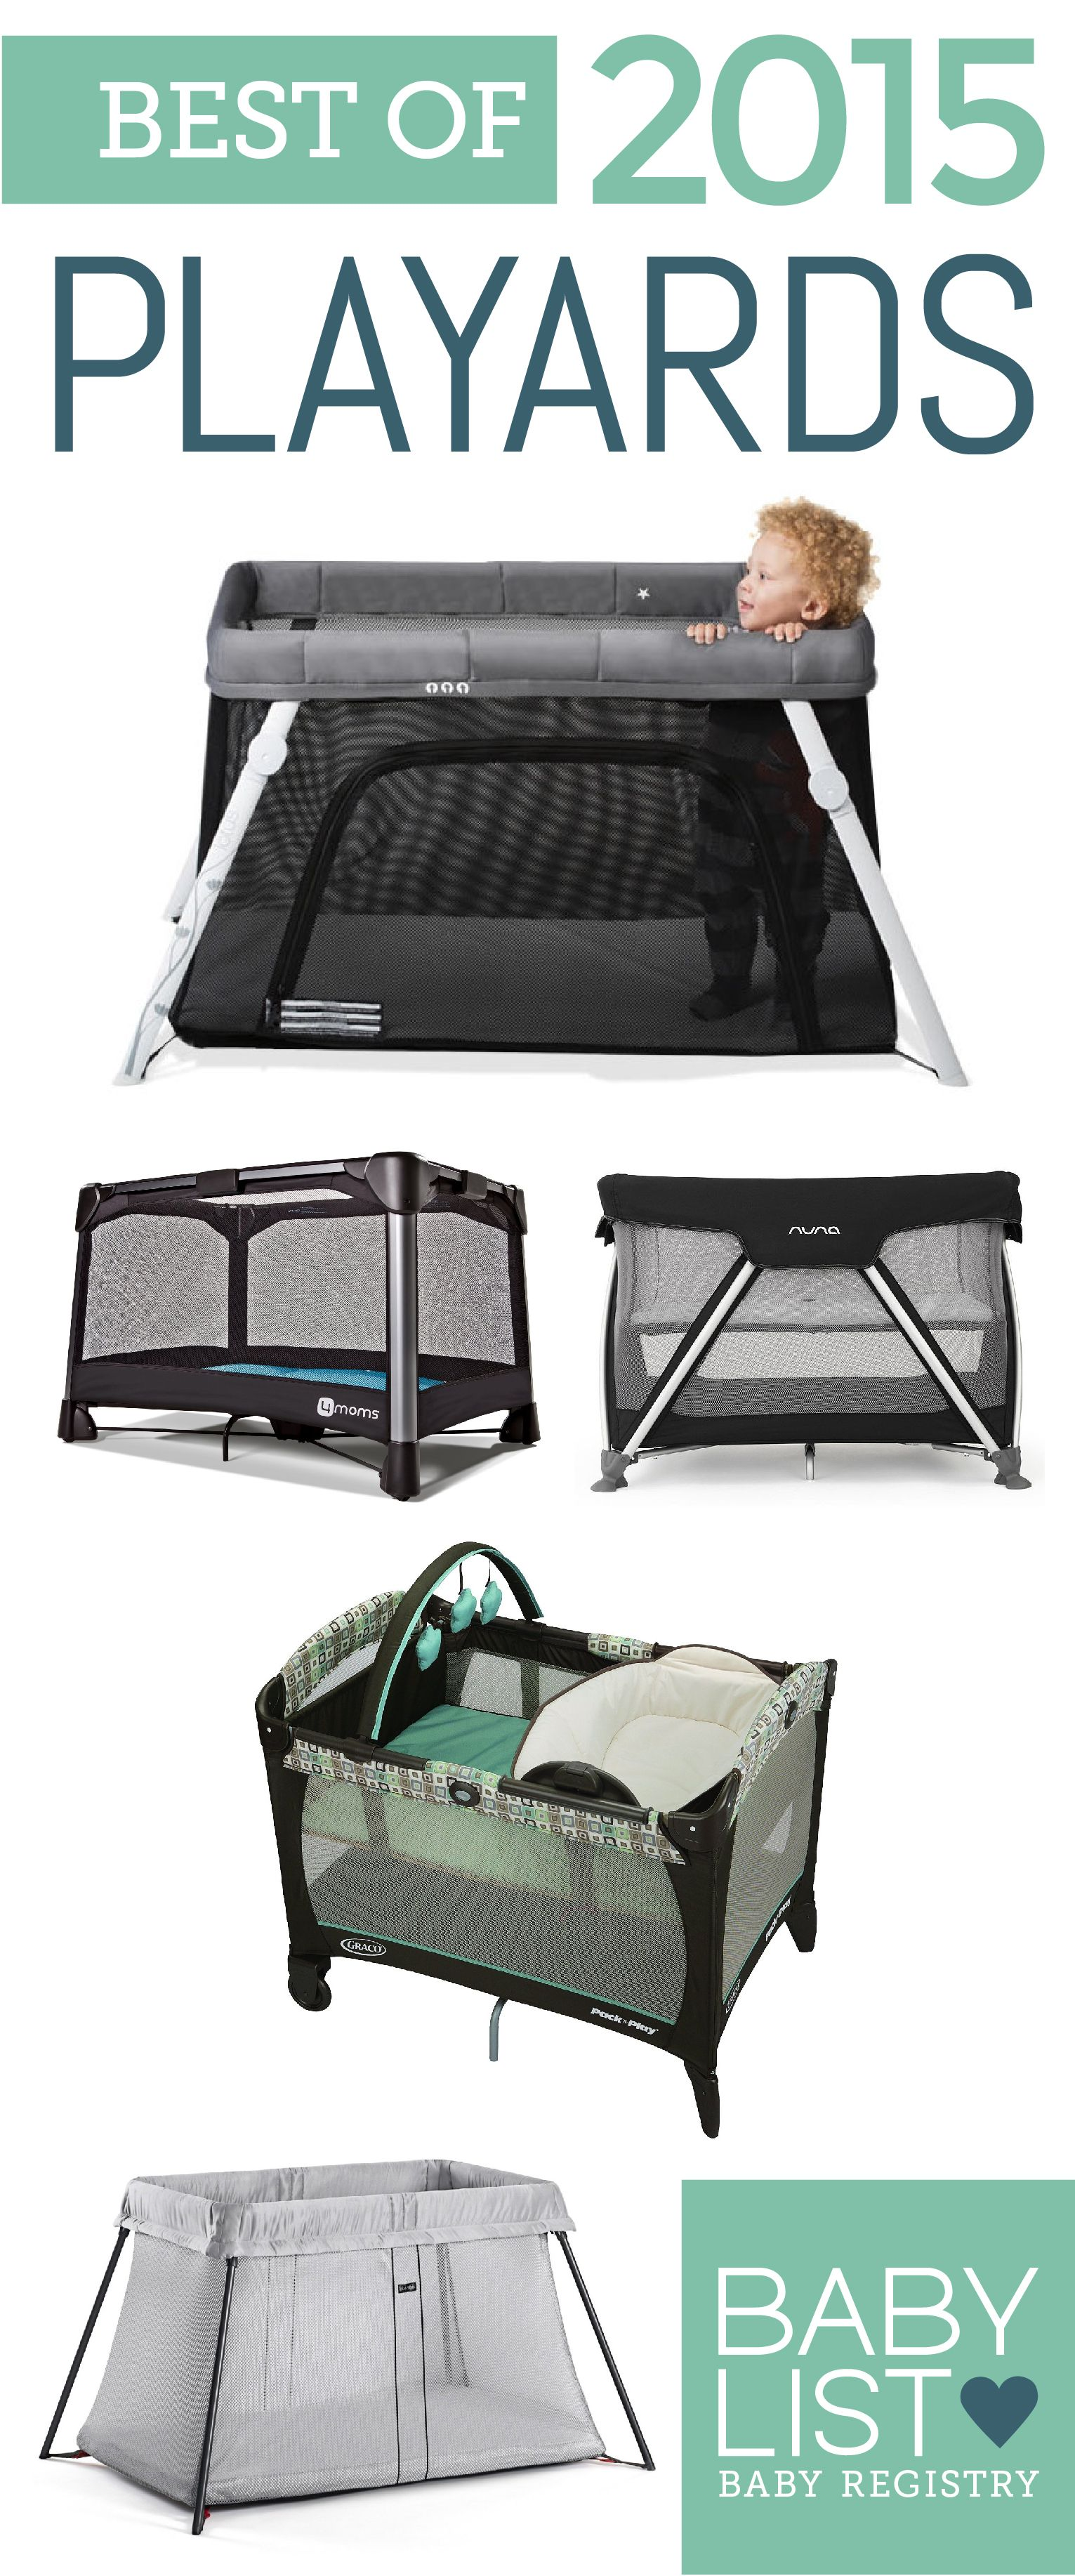 cribs between travel crib playard now lotus differences light family and for bjorn guava the portable baby